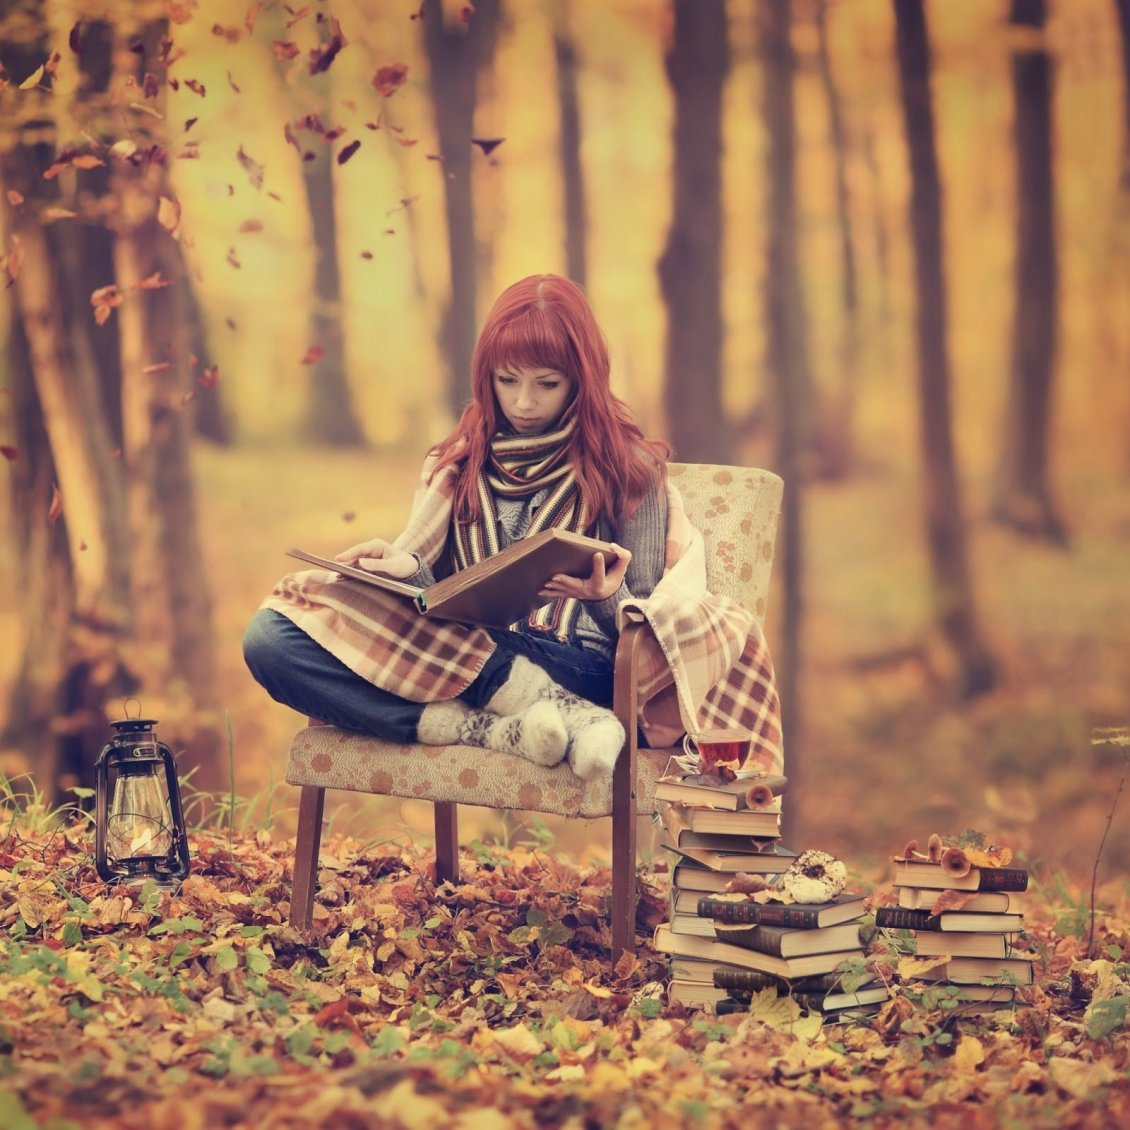 Download Wallpaper Relaxing time in the forest reading books - HD wallpaper